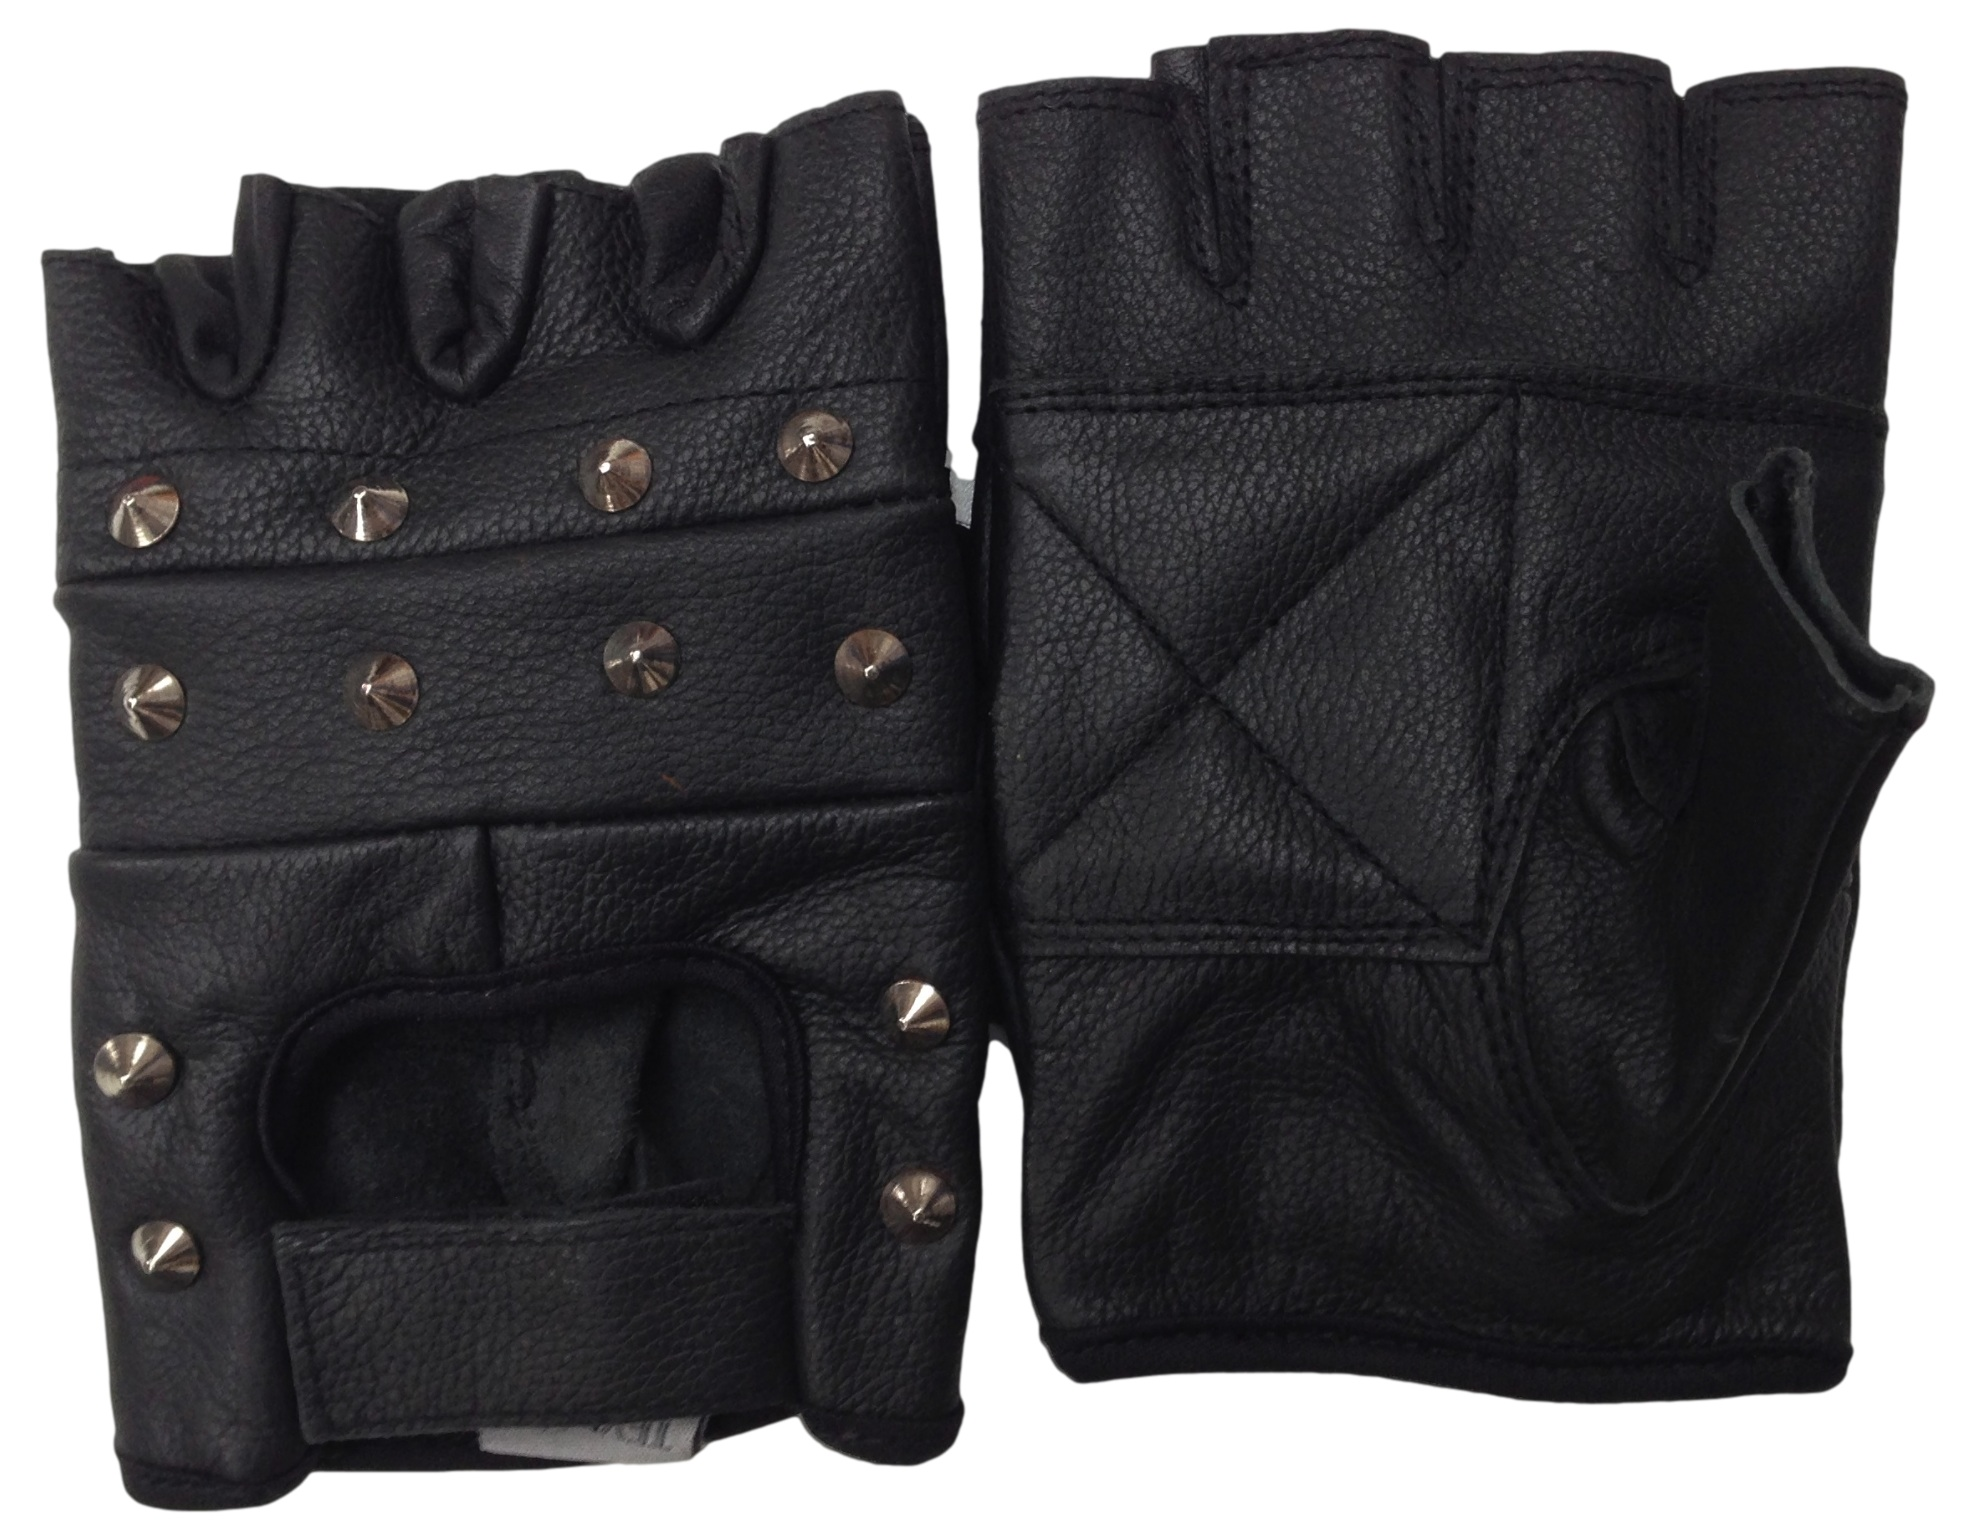 bd02a6e3eb091 ... Black Spiked Gloves: Texpeed Black Fingerless Studded Leather Gloves